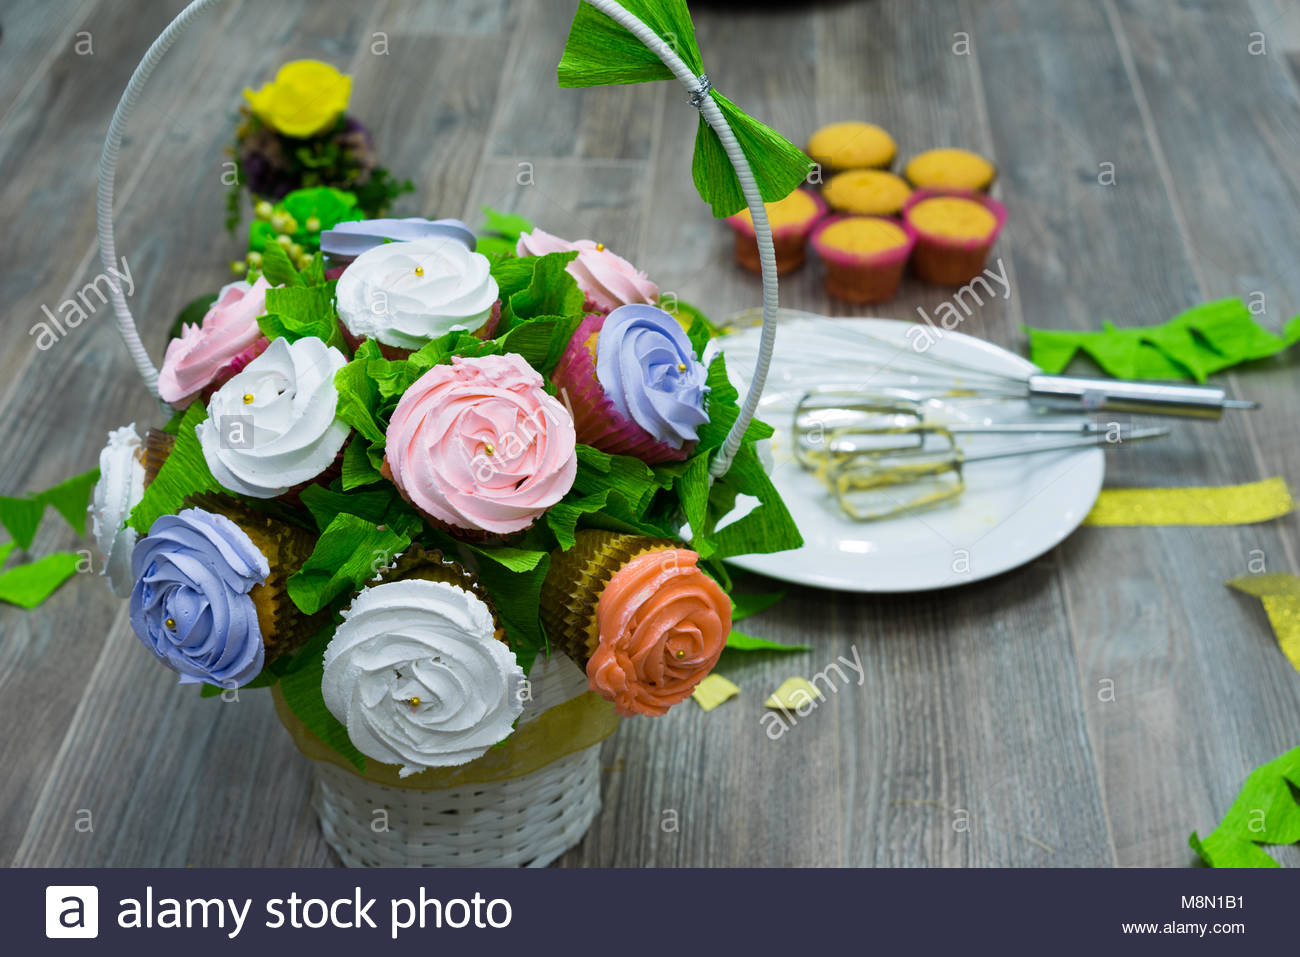 Flower basket made from cupcakes and other cupcakes on the ground flower basket made from cupcakes and other cupcakes on the ground izmirmasajfo